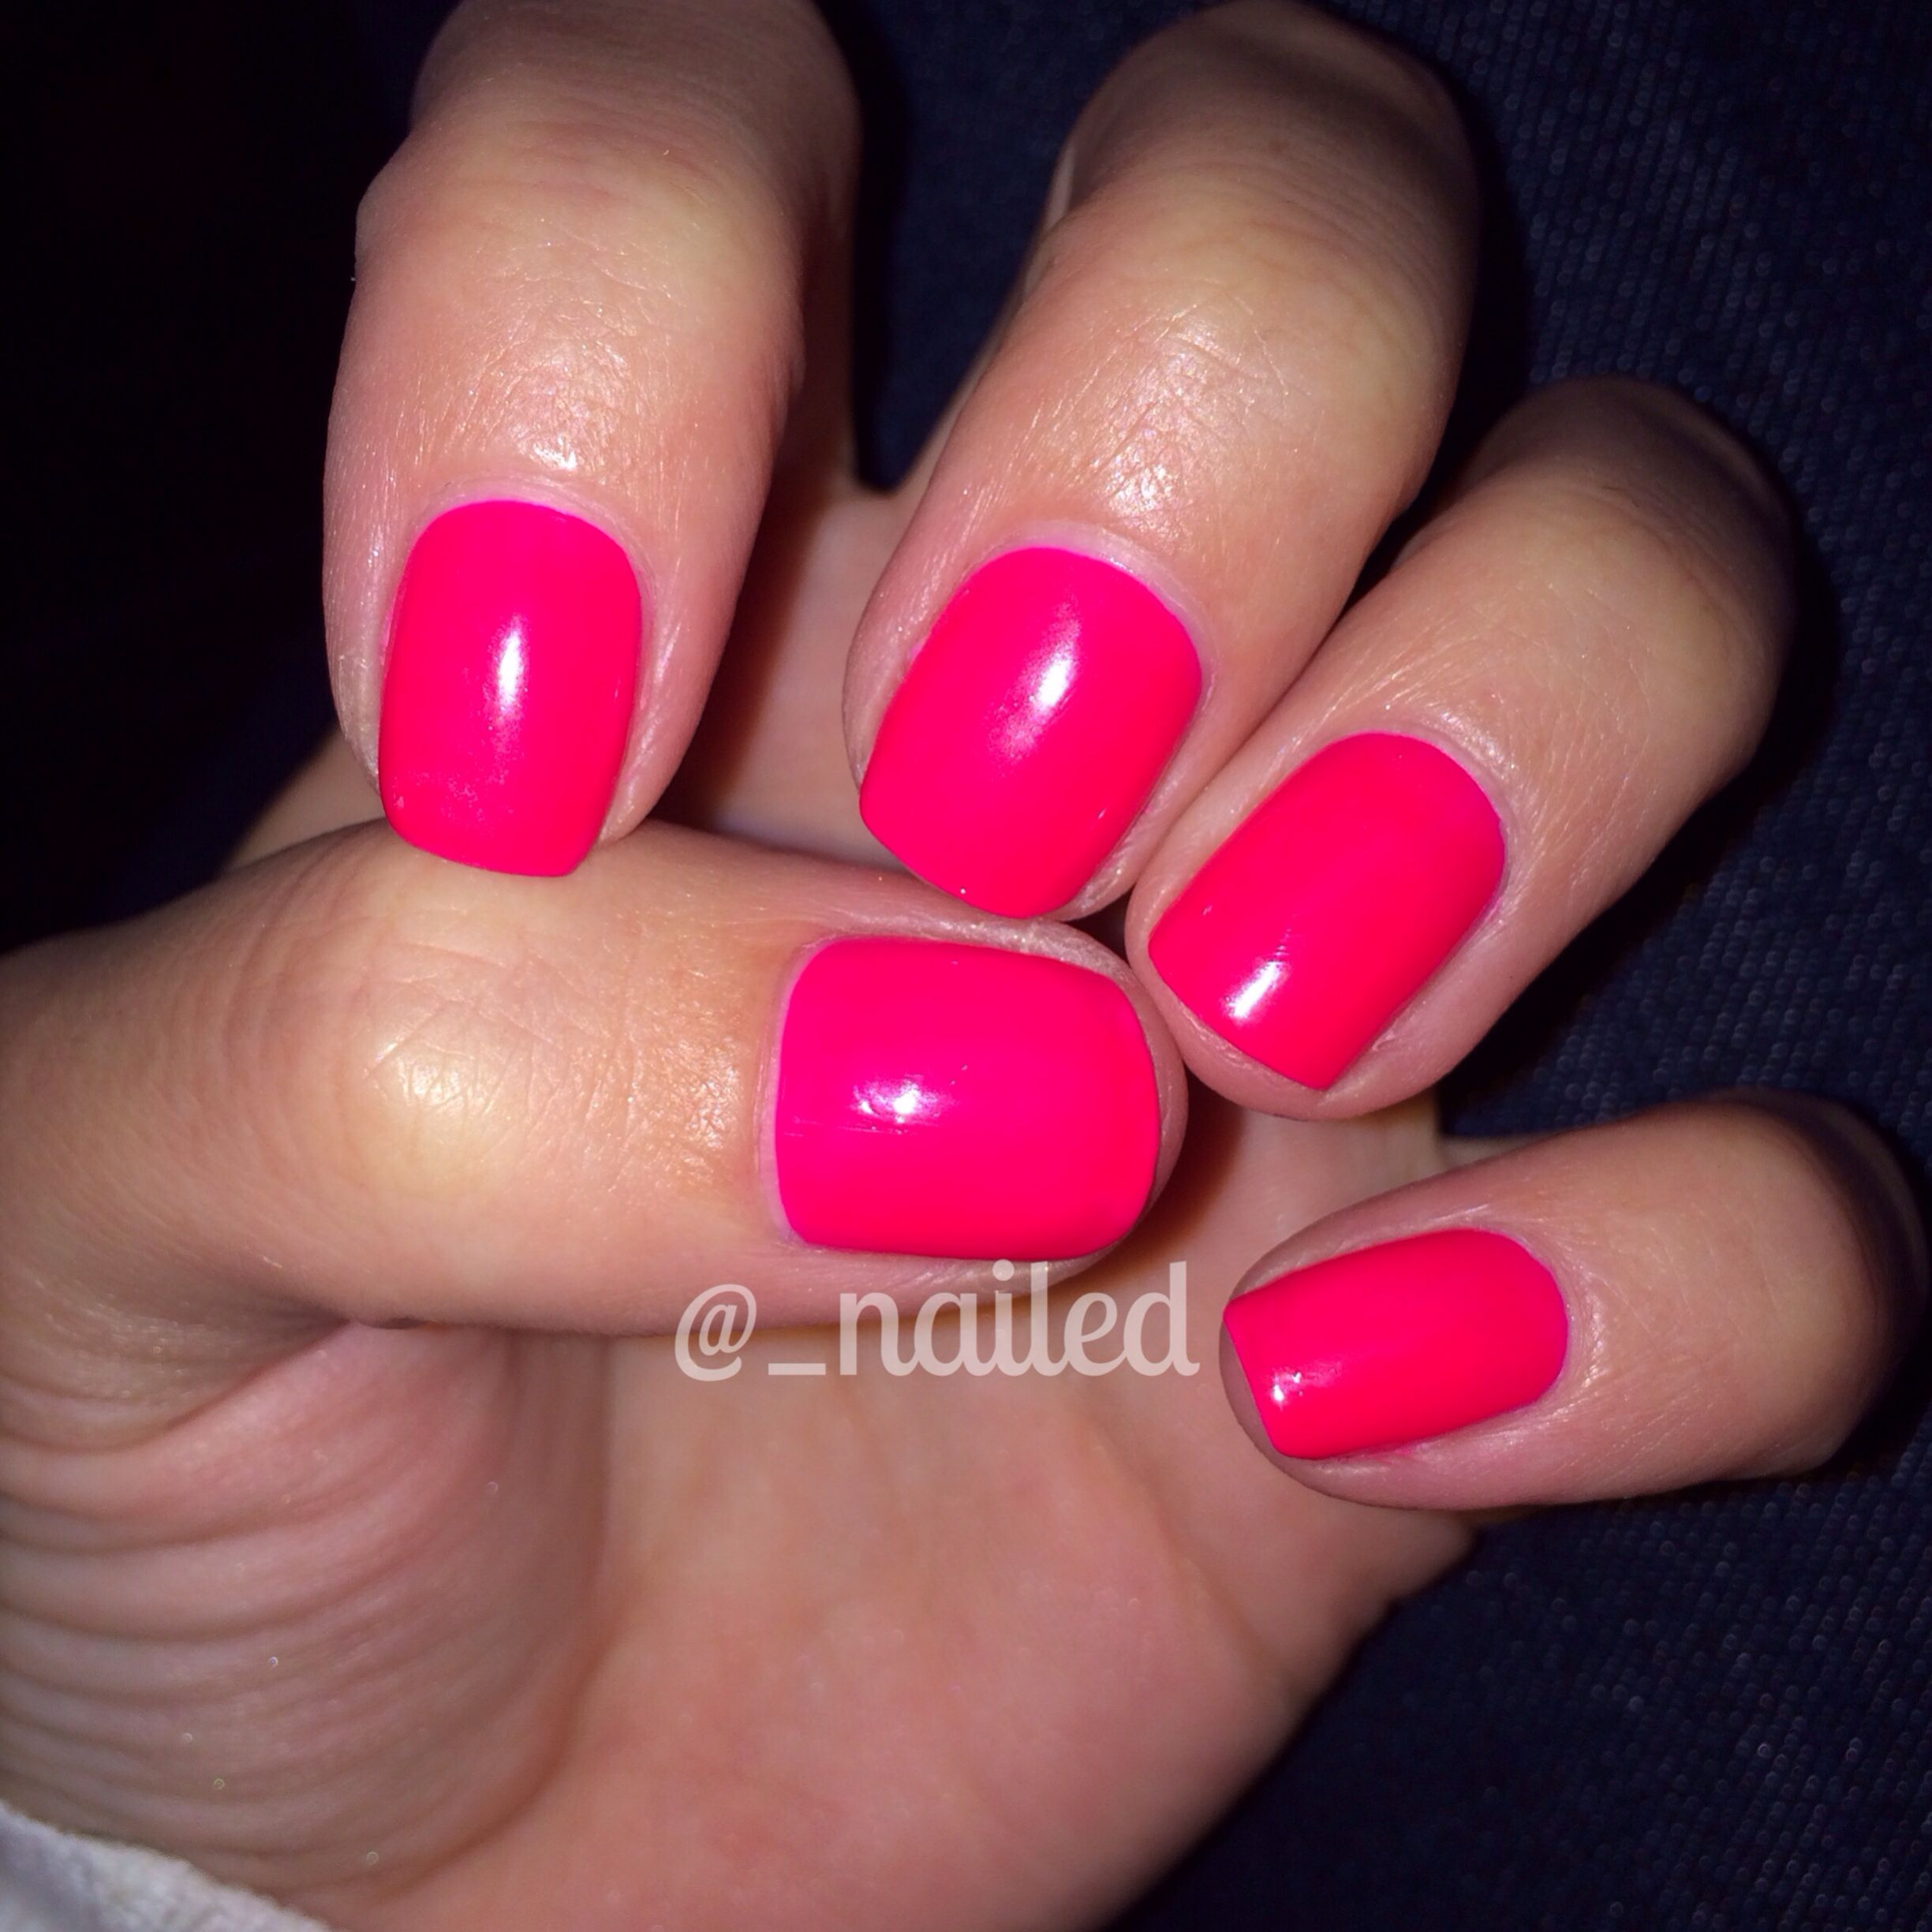 IG: @_nailed neon pink